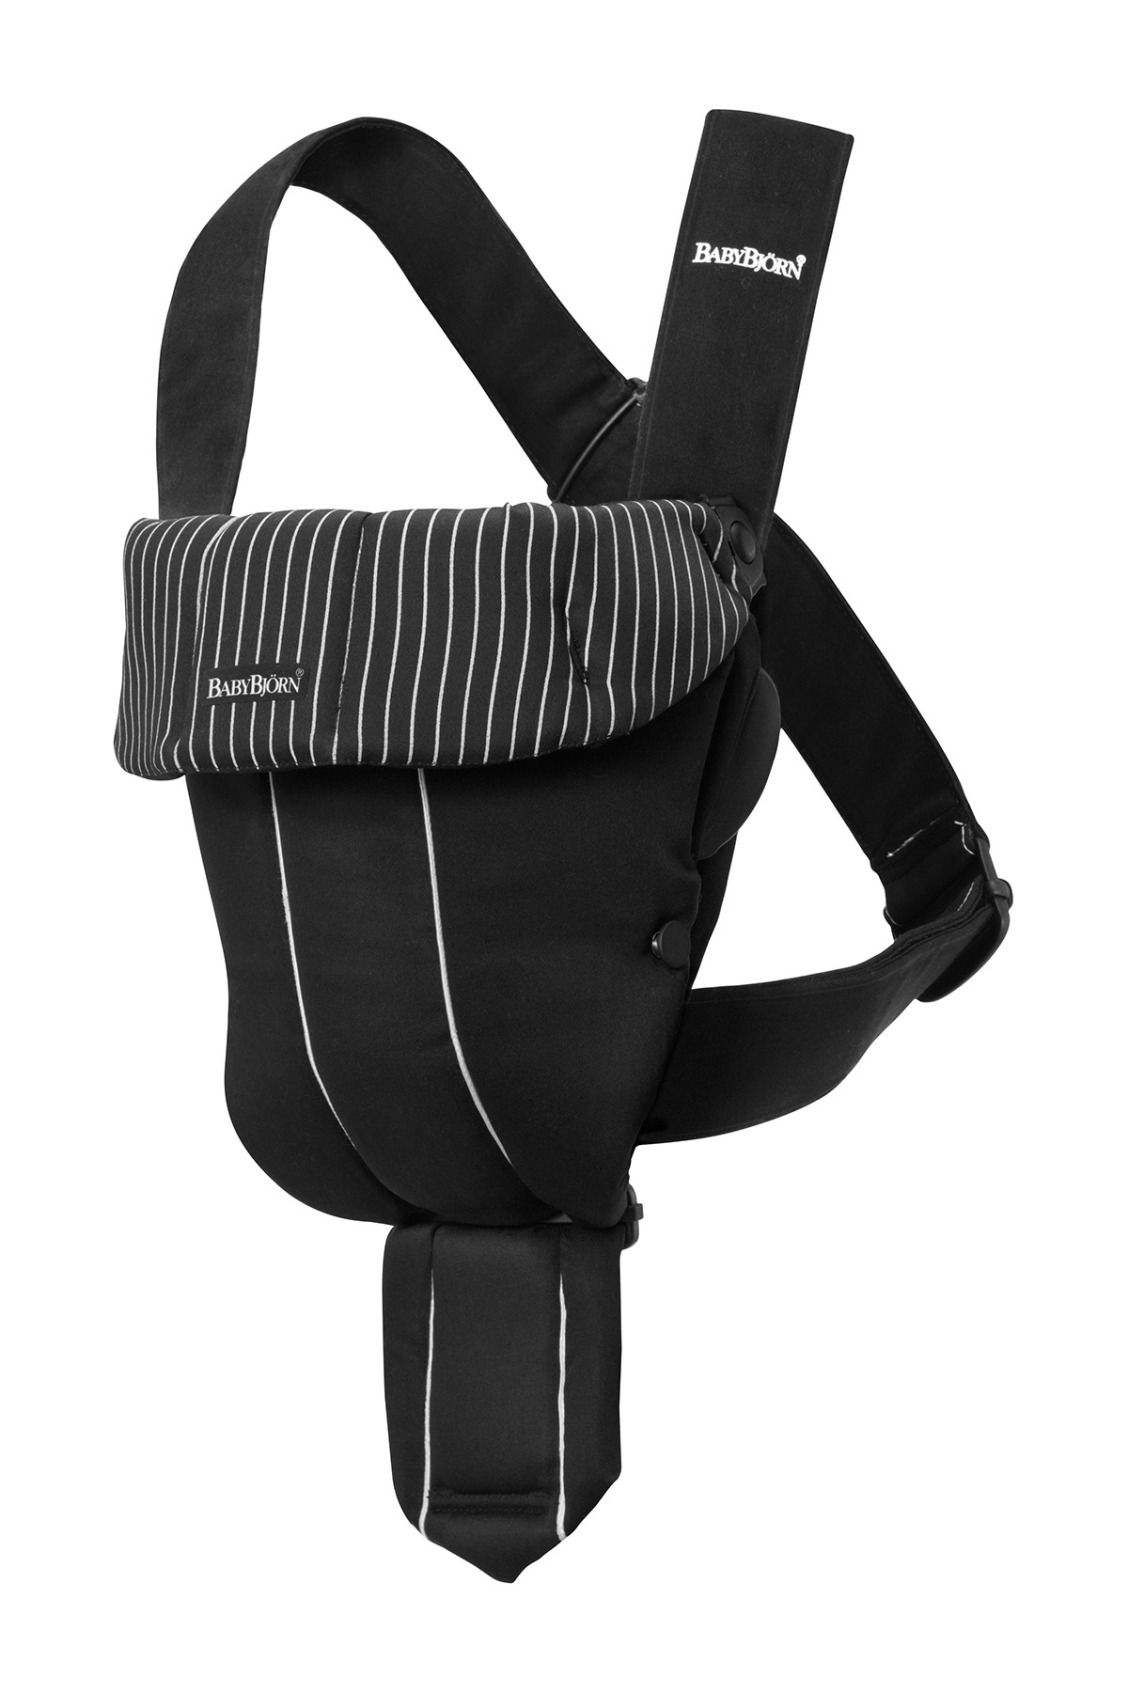 1f874b6db3e The Baby Carrier Original is the perfect choice. You can put on or take off  your baby carrier yourself without assistance.